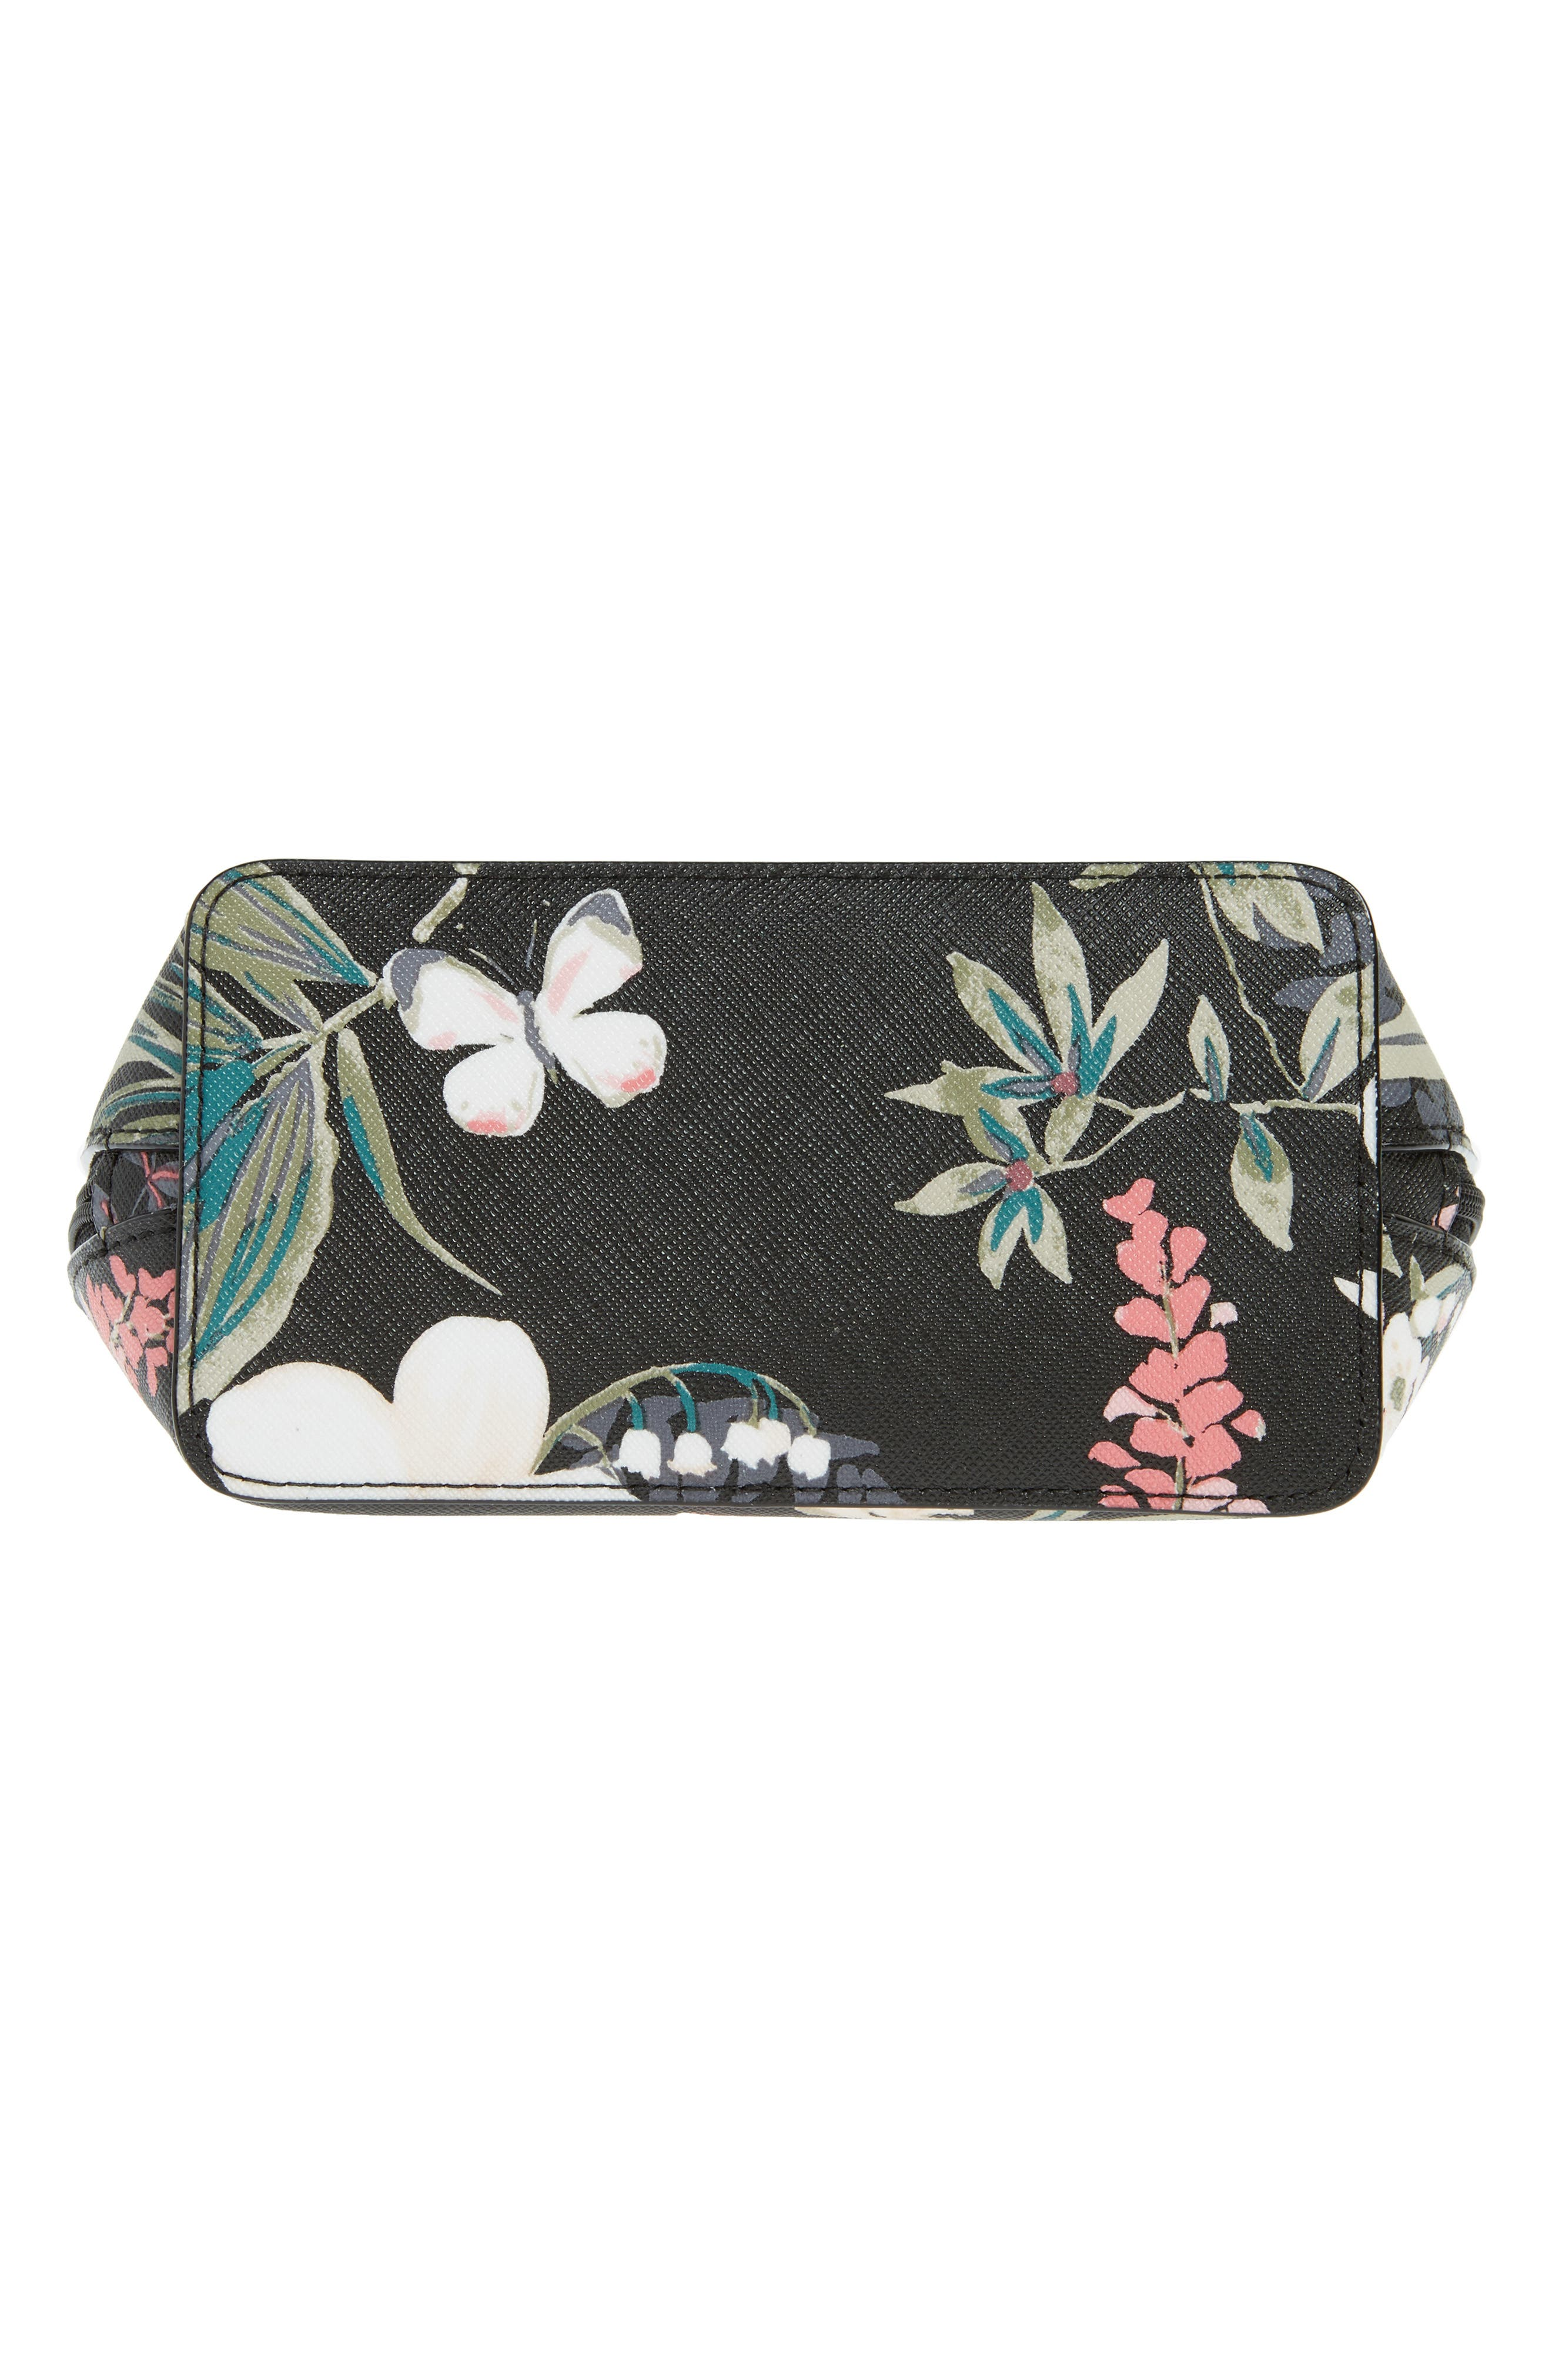 cameron street - small botanical abalene faux leather cosmetics case,                             Alternate thumbnail 5, color,                             001